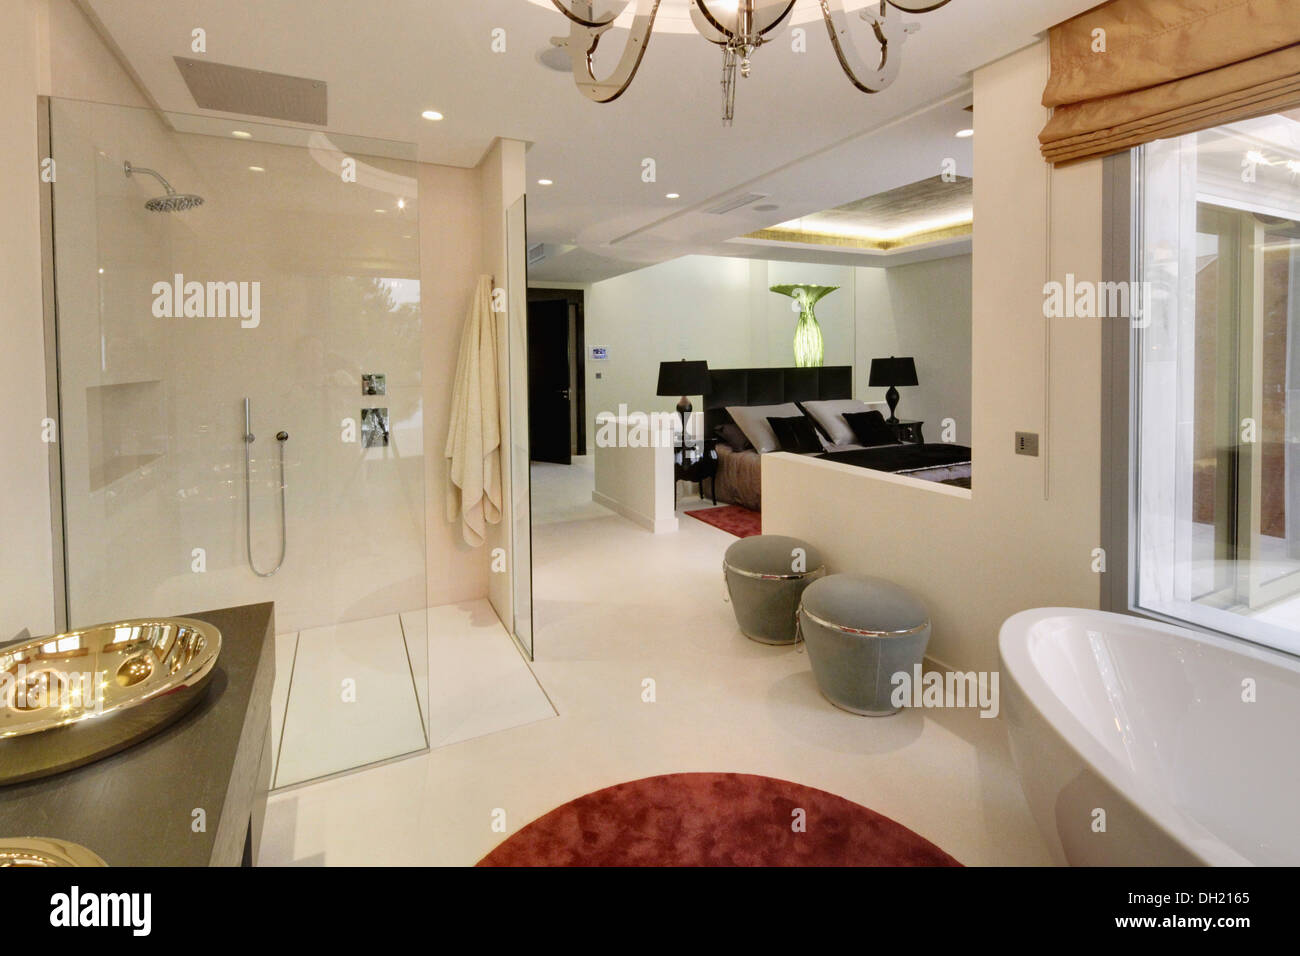 Large Walk In Shower And Gray Stools In Open Plan En Suite Bathroom Stock Photo 62125117 Alamy